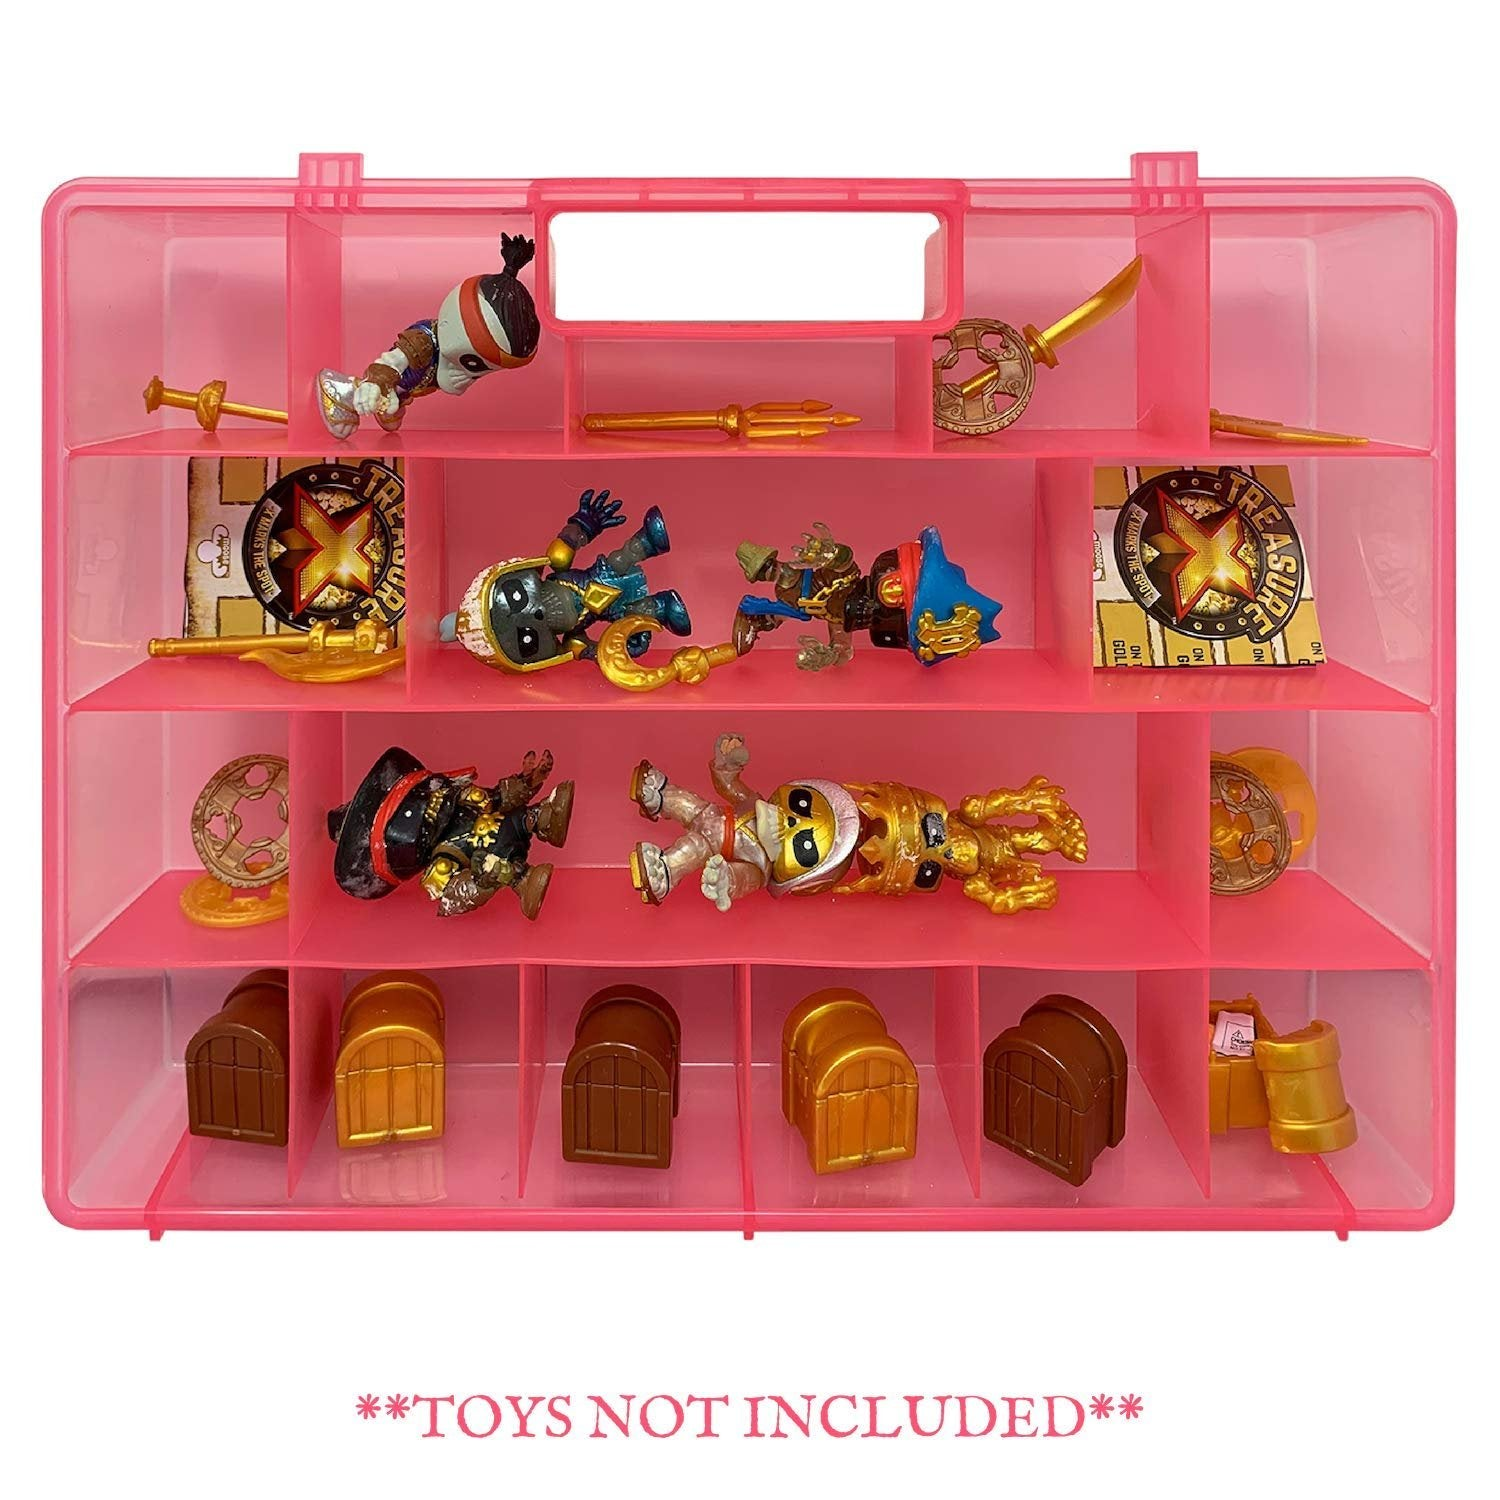 Life Made Better Portable Pink Toy Carrying Case & Organizer, Compatible with Treasure X and Other Figures. Not by Treasure X, Created by LMB